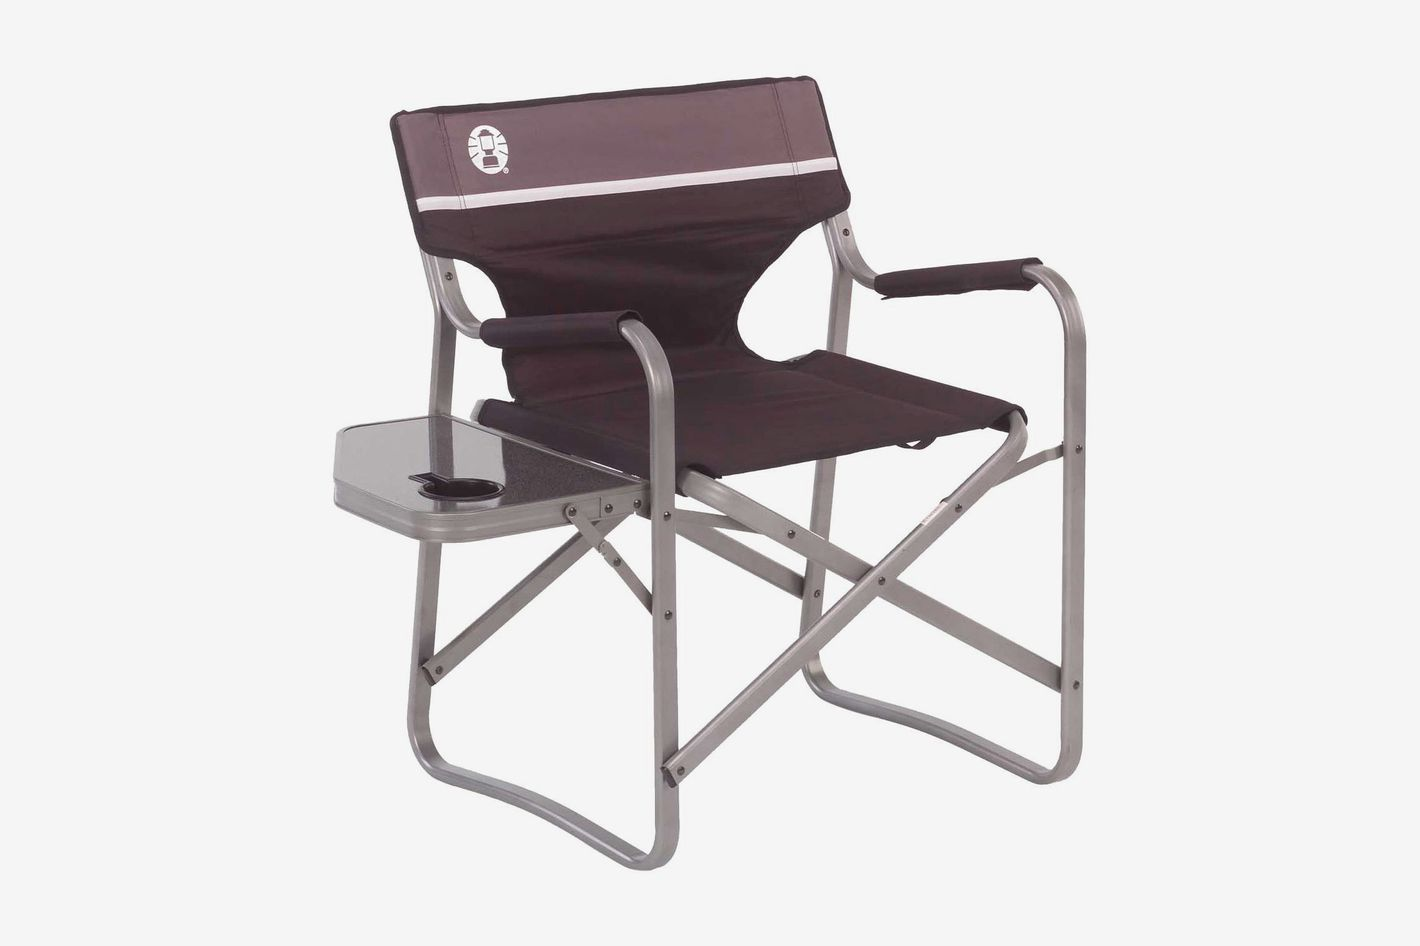 Coleman Portable Deck Chair With Side Table At Amazon